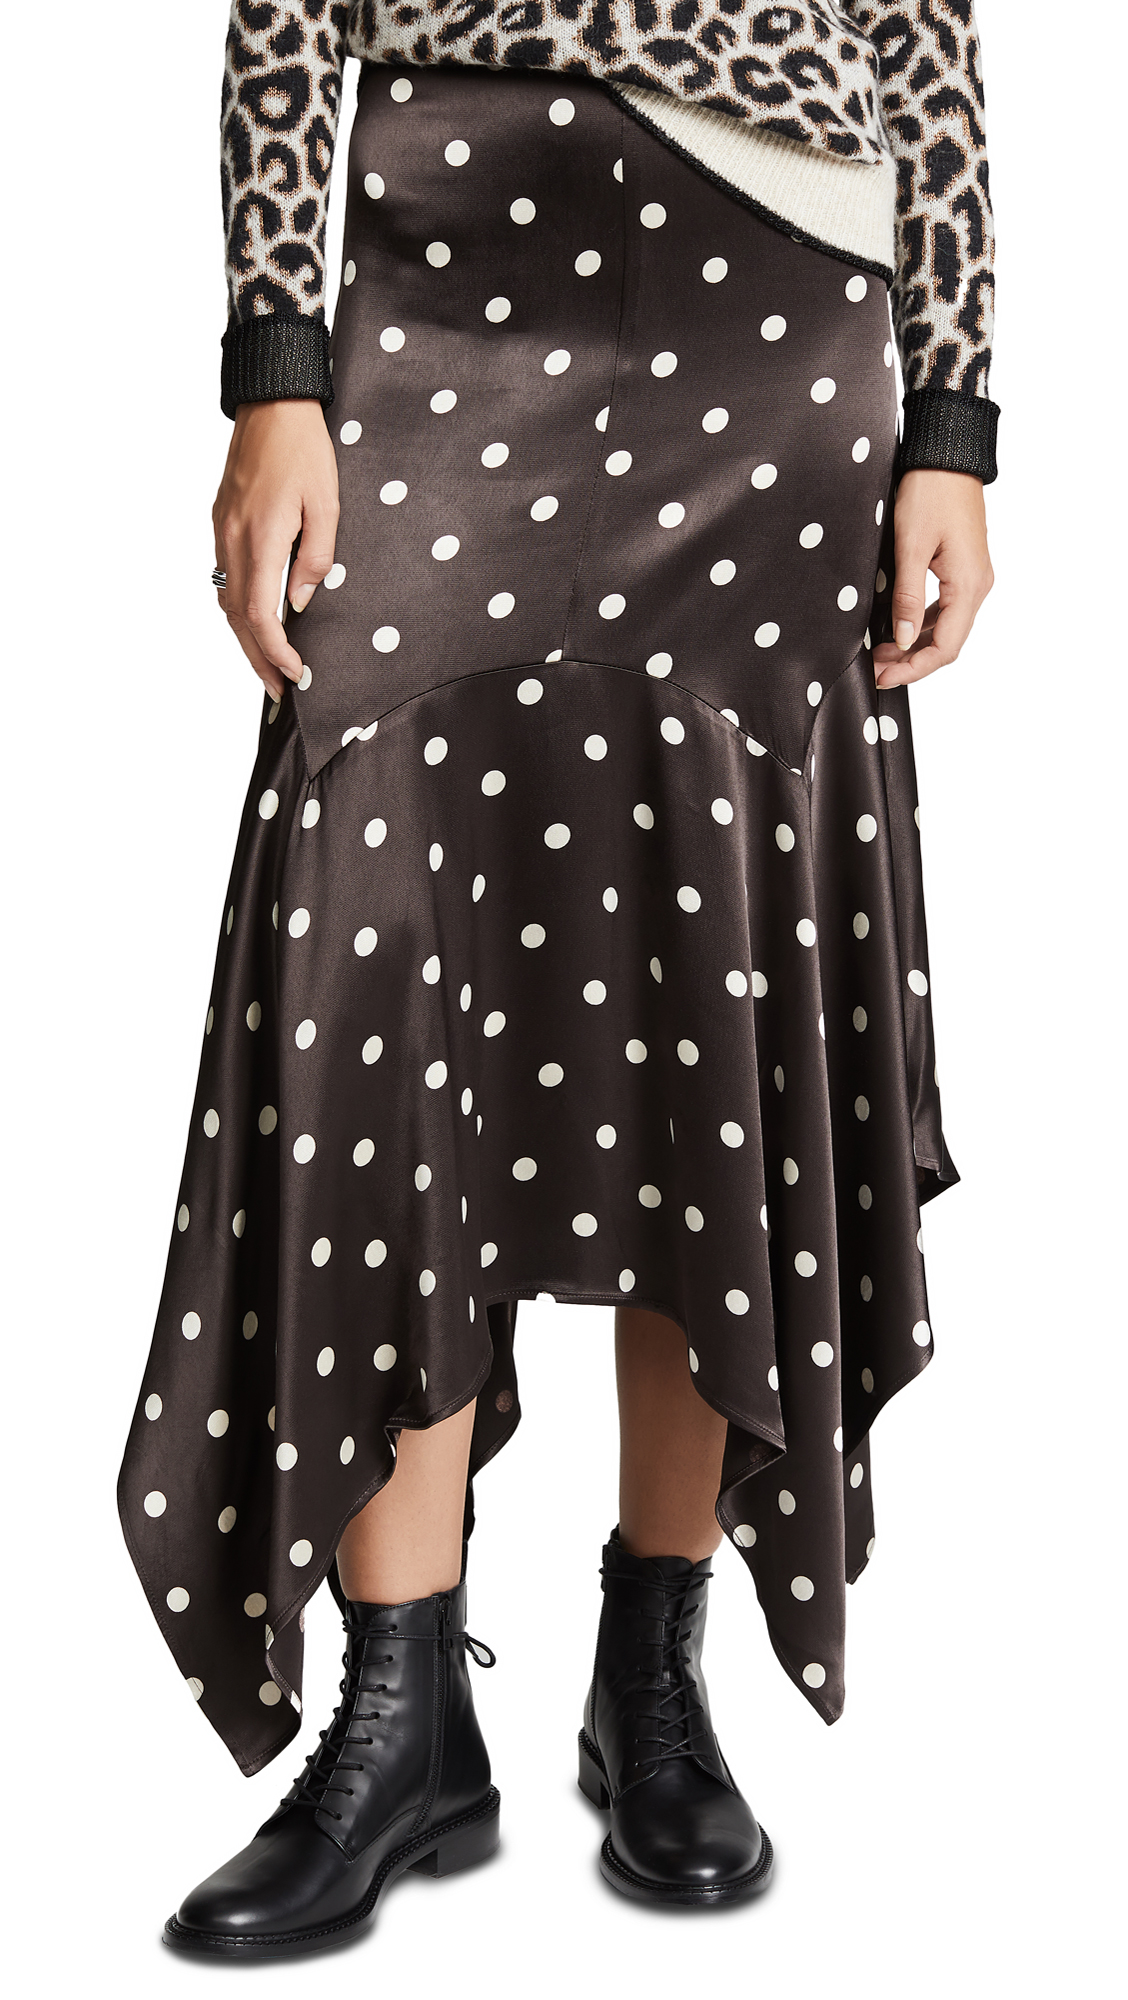 GANNI Polka Dot Viscose Satin Long Skirt in Brown